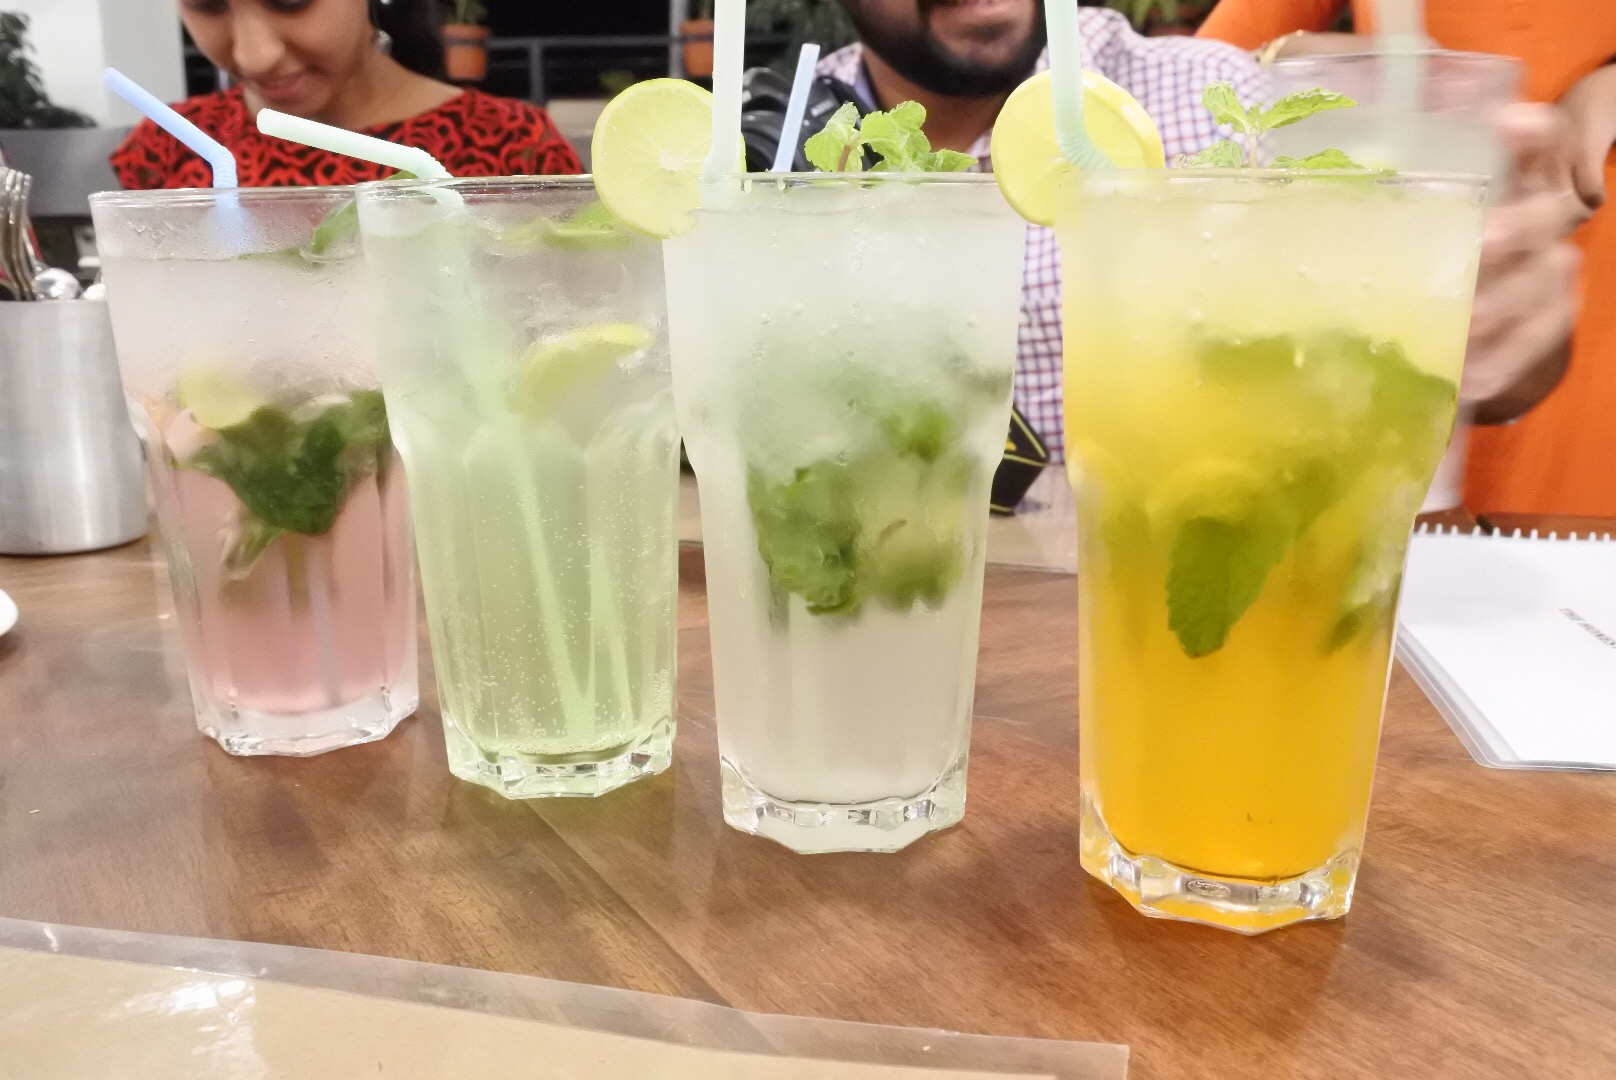 Our non-alcoholic drinks